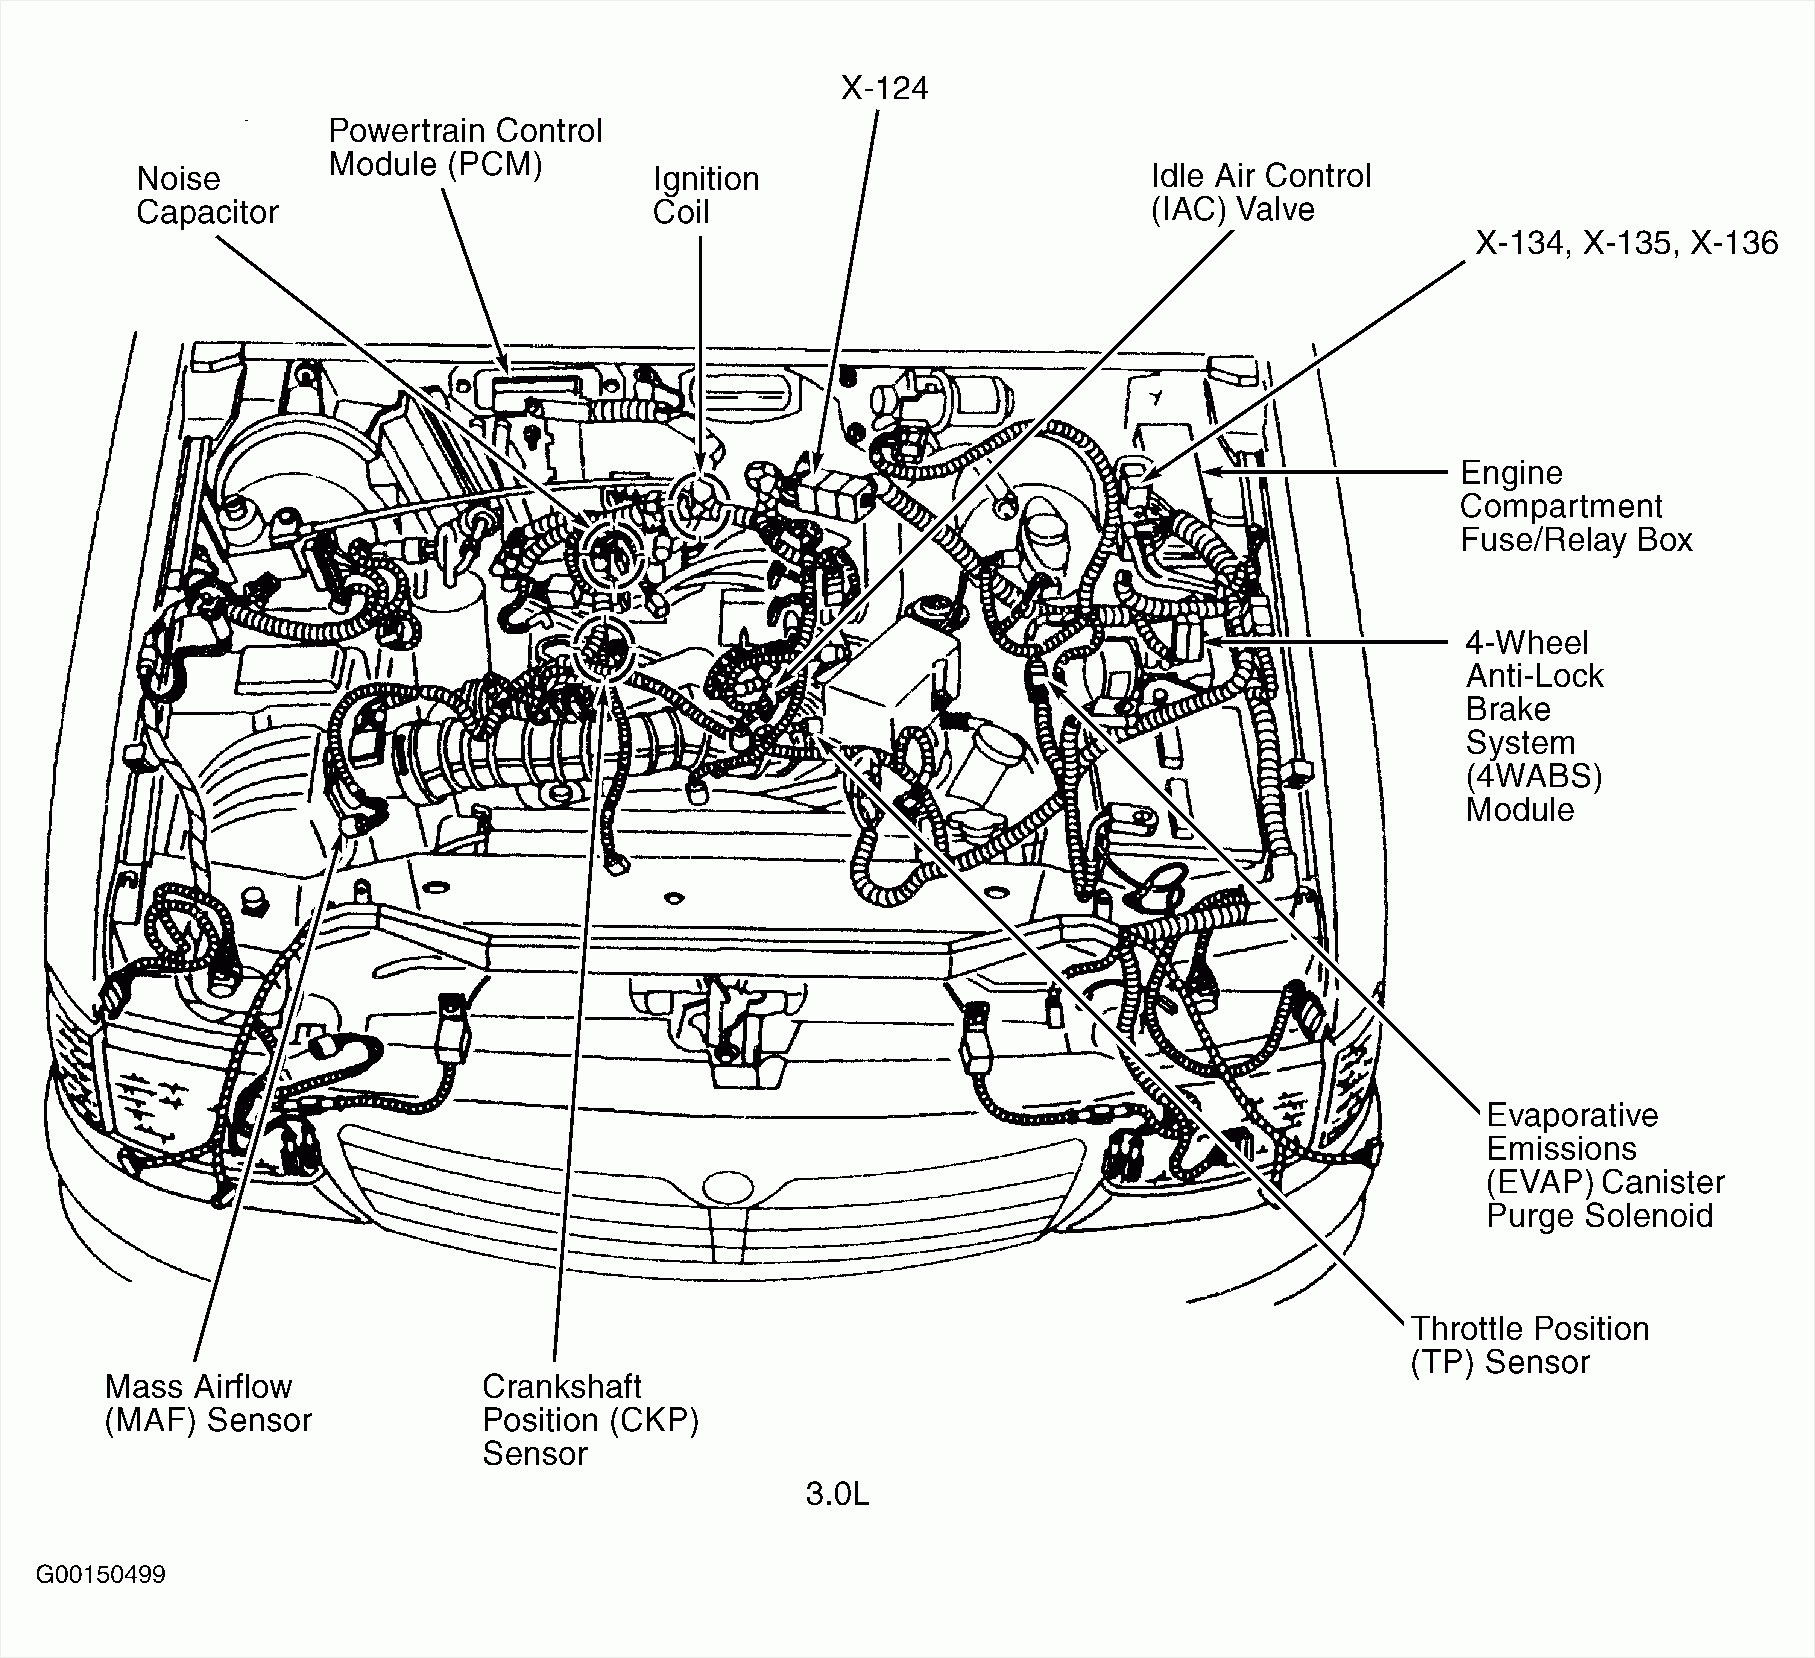 snowmobile engine diagram m63 stipgruppe essen de \u2022snowmobile wiring diagram best wiring library rh 158 princestaash org kohler snowmobile engine wiring diagram